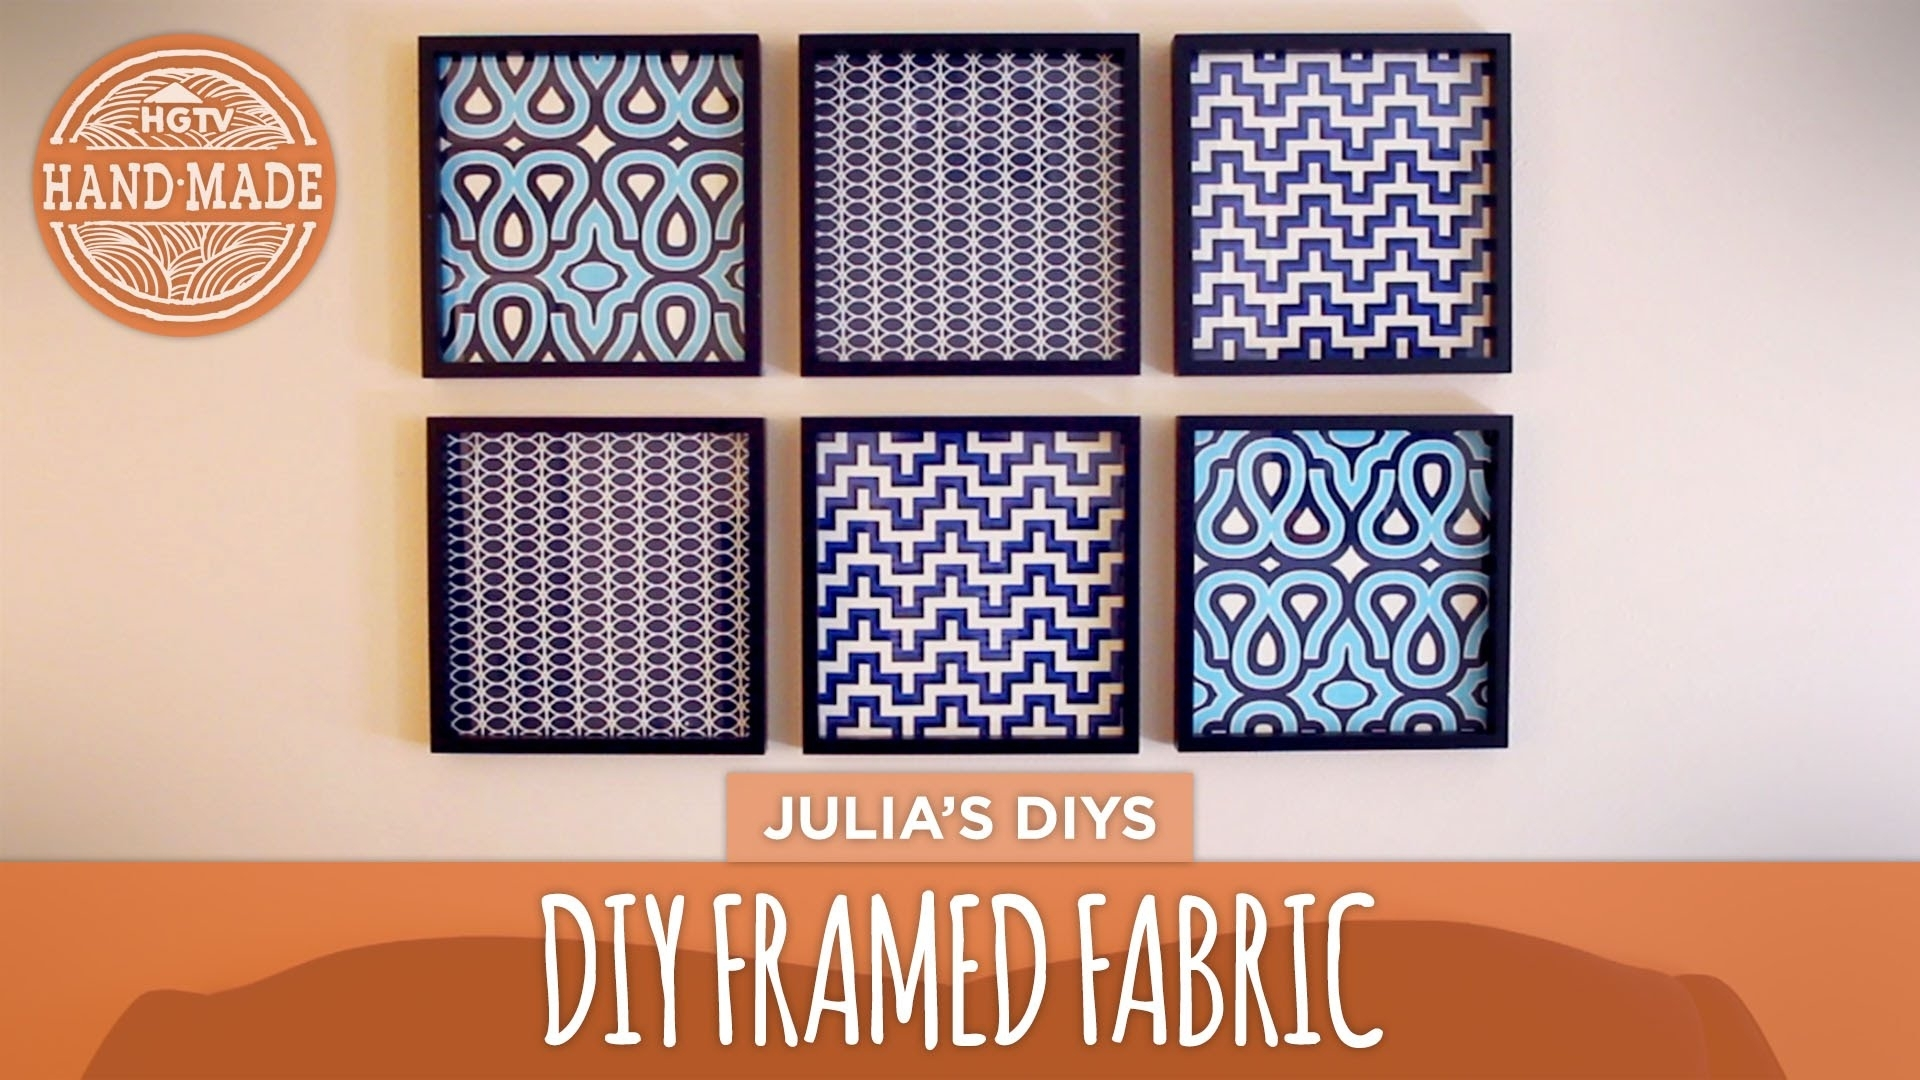 Diy Framed Fabric Gallery Wall – Hgtv Handmade – Youtube With Most Up To Date Fabric Wall Accents (View 4 of 15)